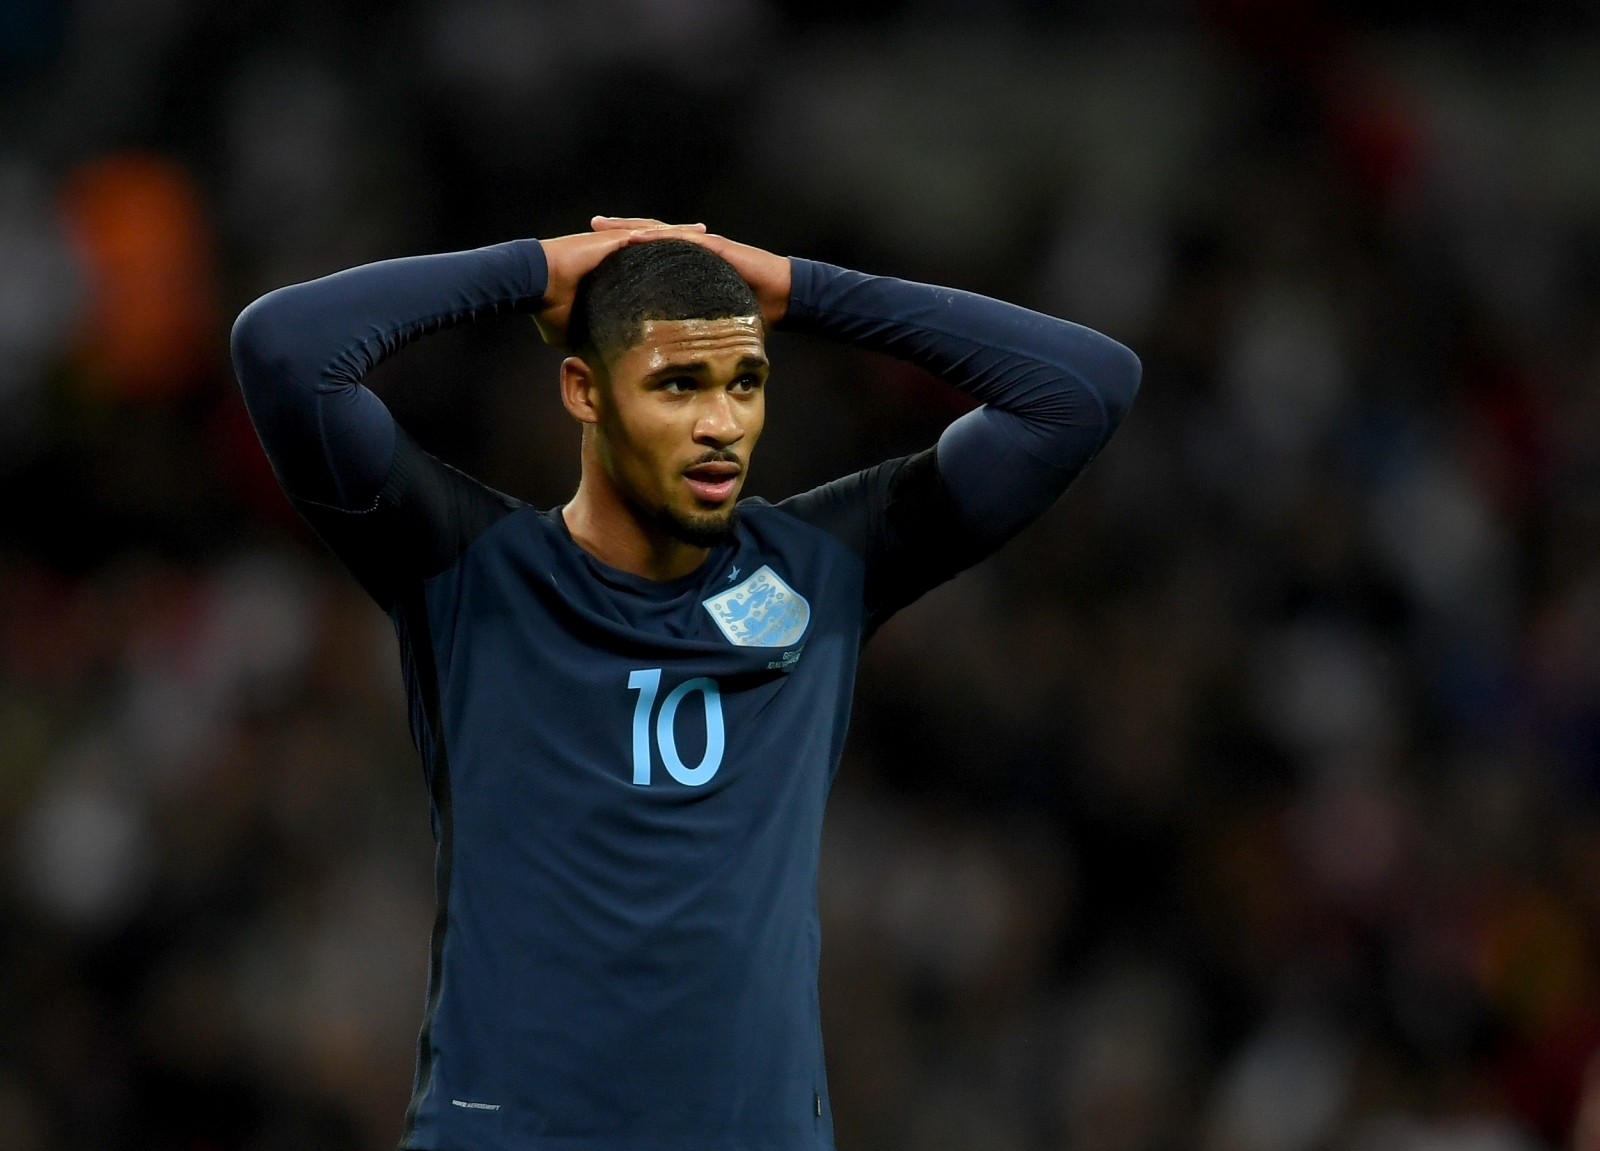 Loftus-Cheek injury could open door for Puncheon at Crystal Palace